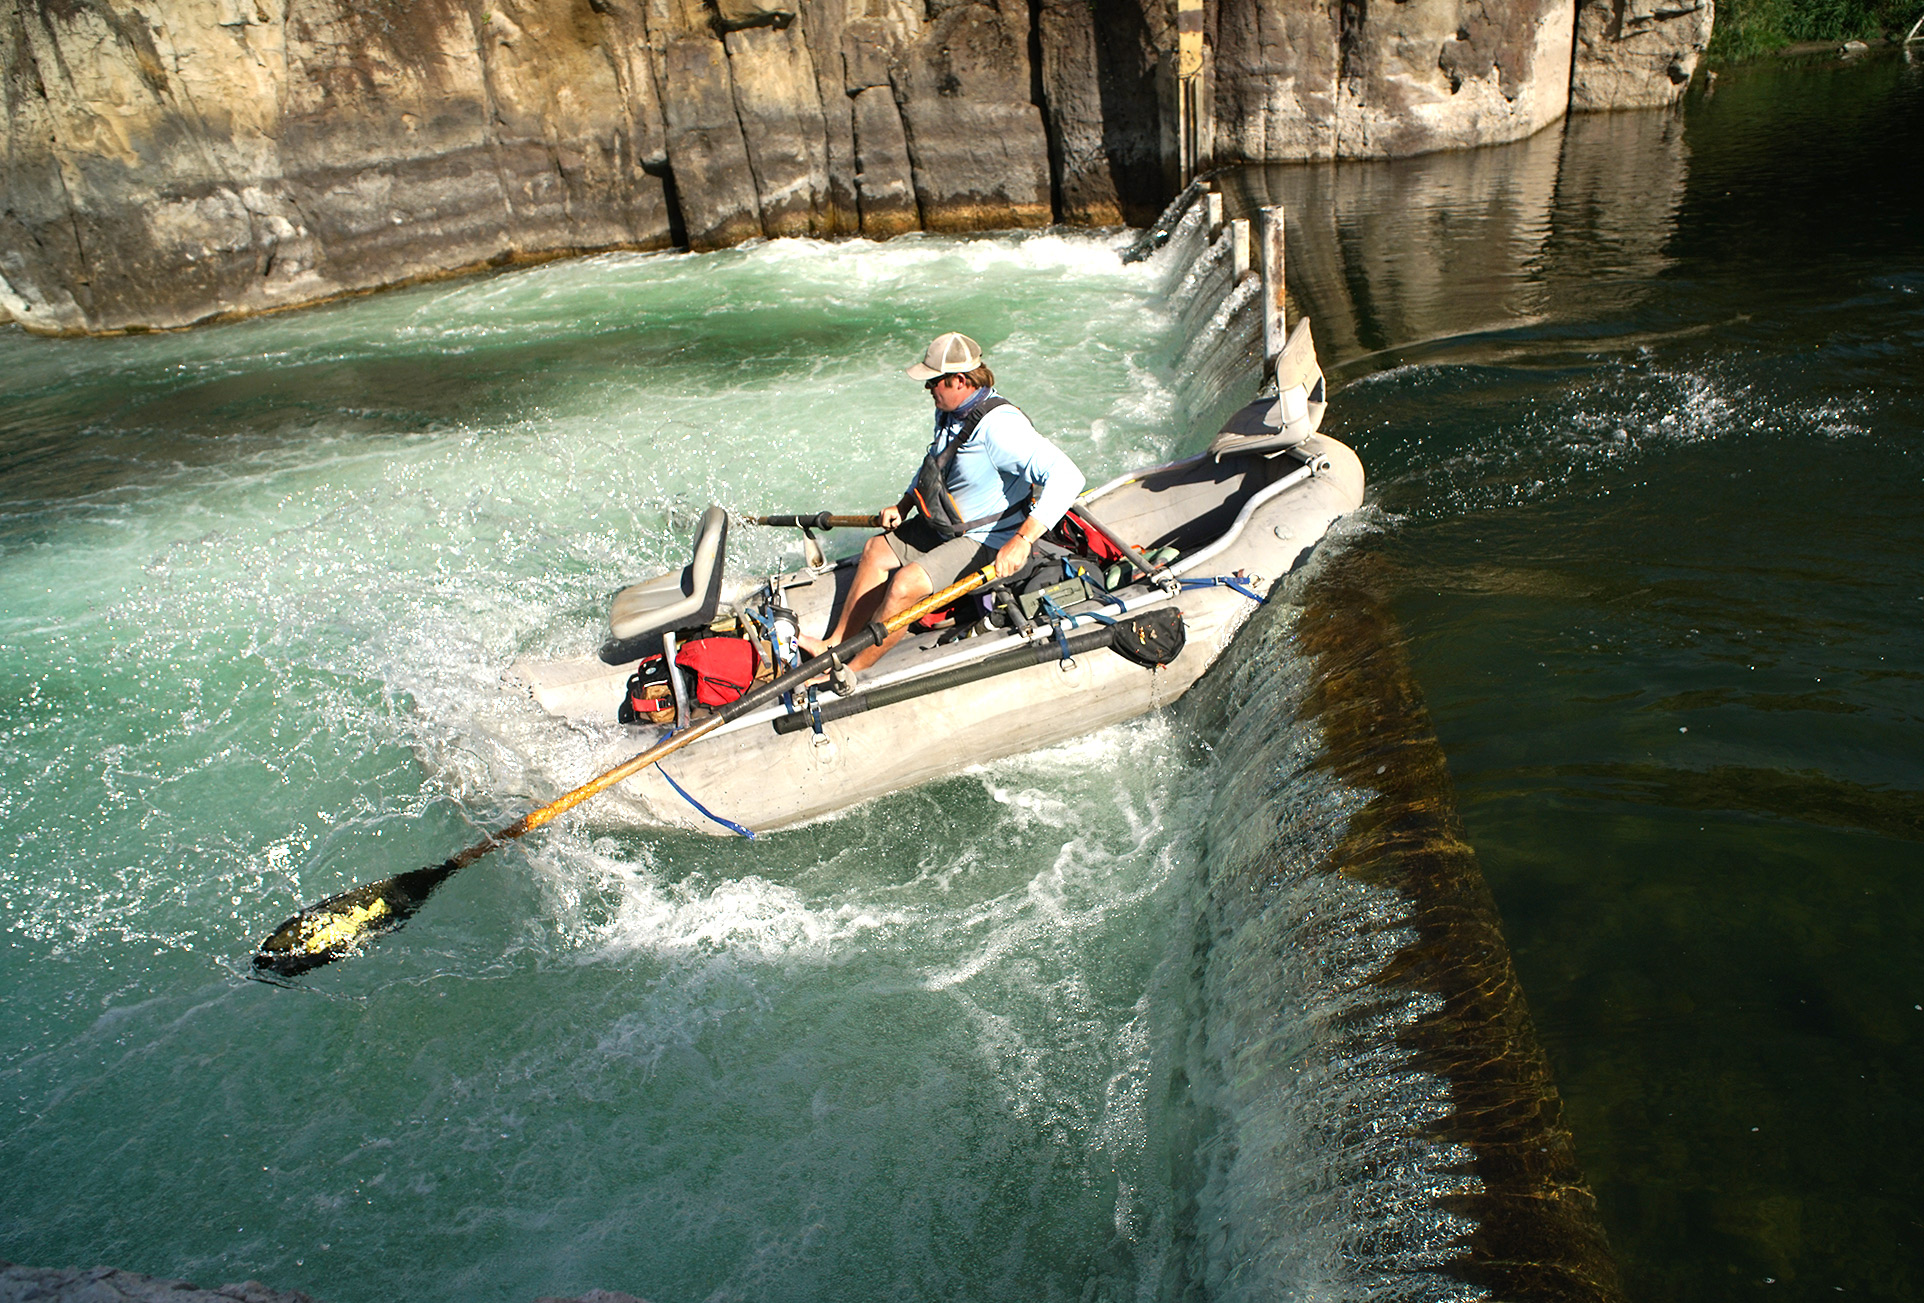 Worldcast Anglers guide Joe Harris dropping in over a spillway on the Teton river, Idaho